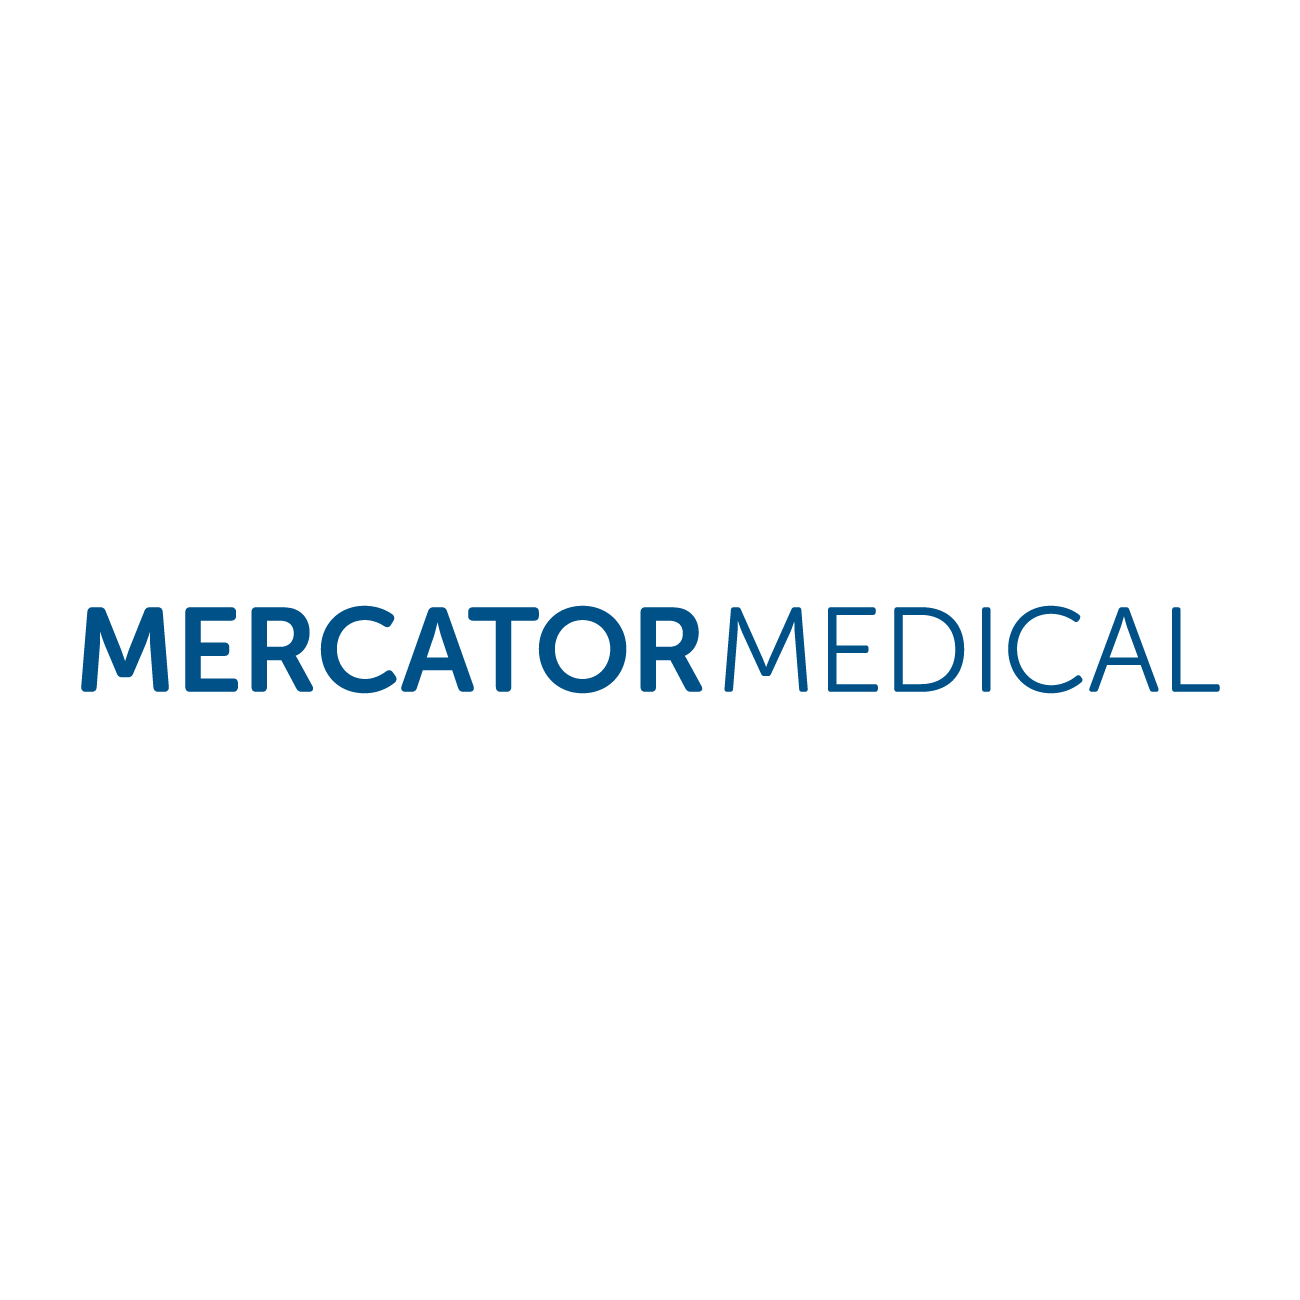 Mercator Medical